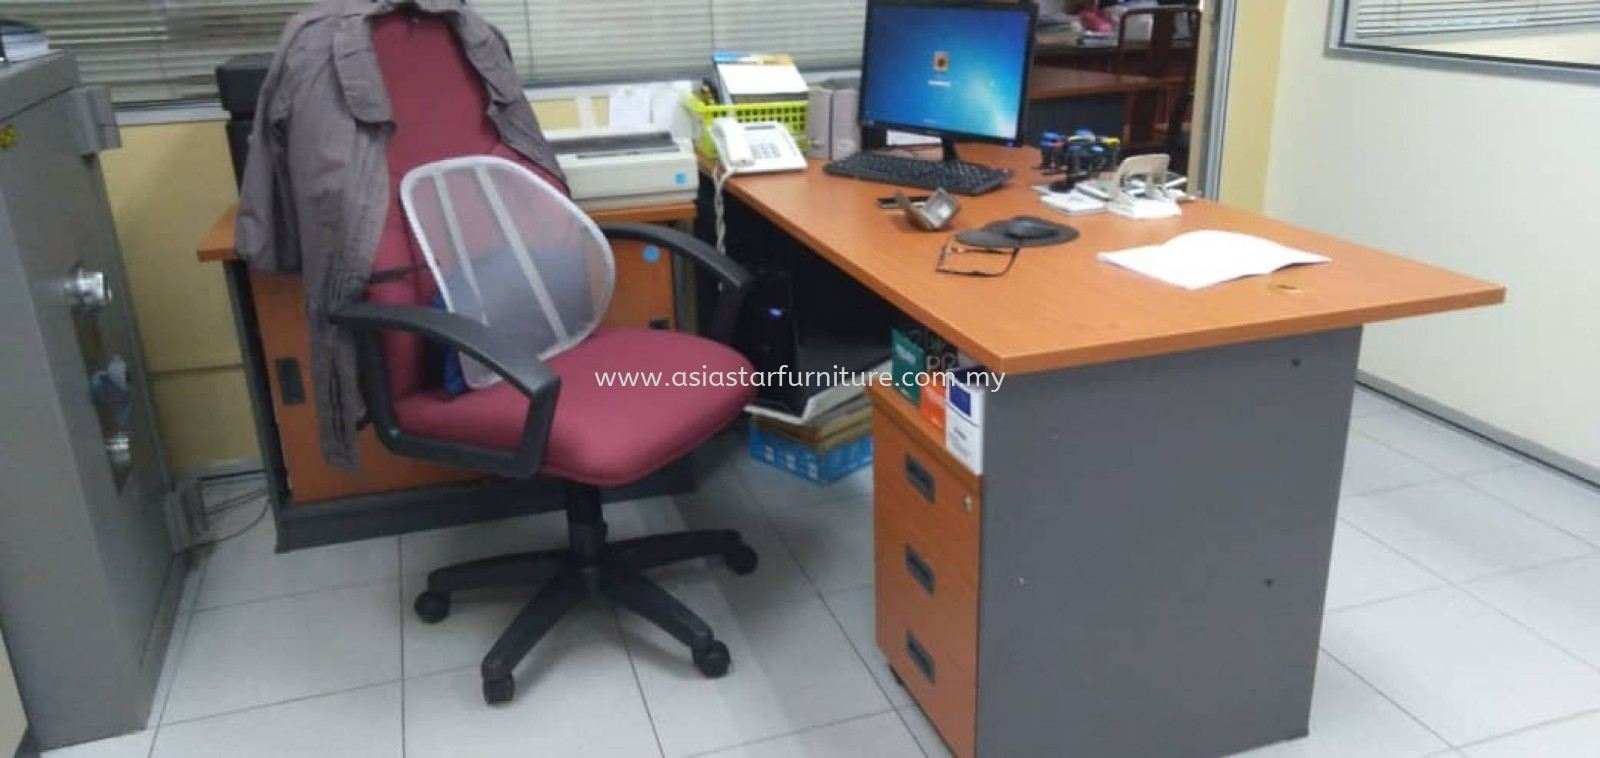 DELIVERY & INSTALLATION WRITING OFFICE TABLE WOODEN BASE GT157 WITH SIDE CABINET GS 303 & MOBILE PEDESTAL 3D GM 3 OFFICE FURNITURE BUKIT JALIL, KUALA LUMPUR